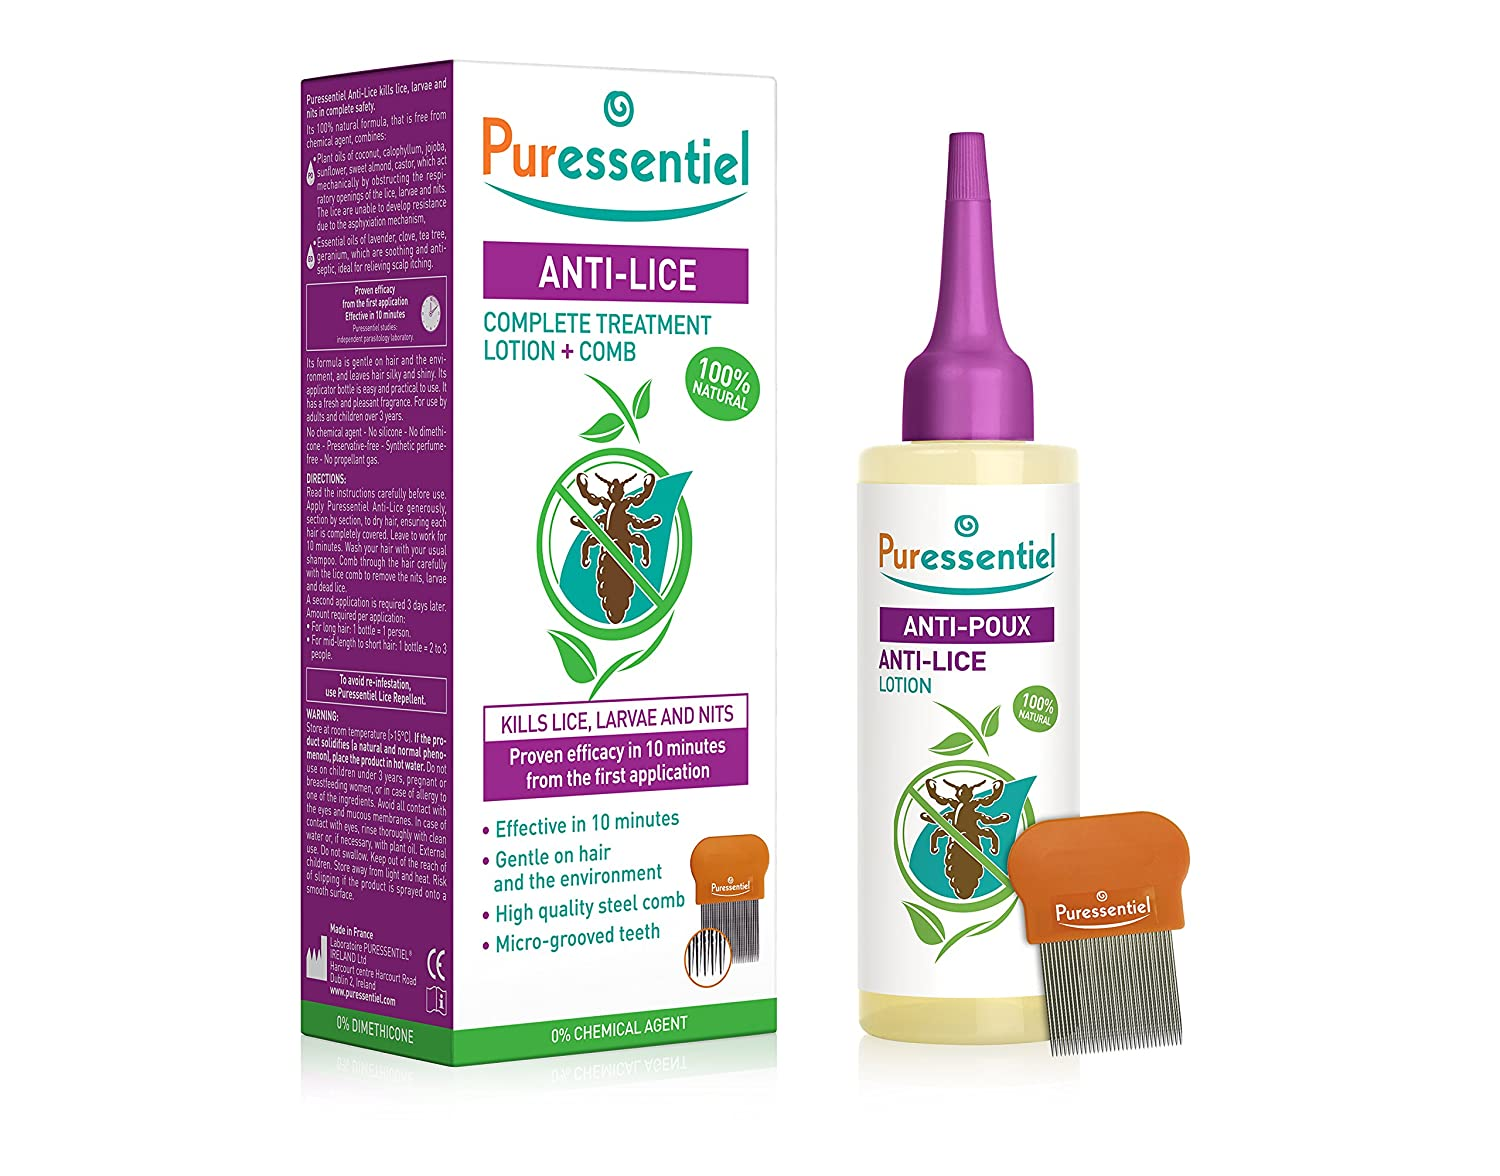 Puressentiel Anti-Lice Treatment Lotion and Comb 100 ml - head lice lotion, 100% natural origin, proven efficacy in 10 minutes, micro-grooved comb included: ...